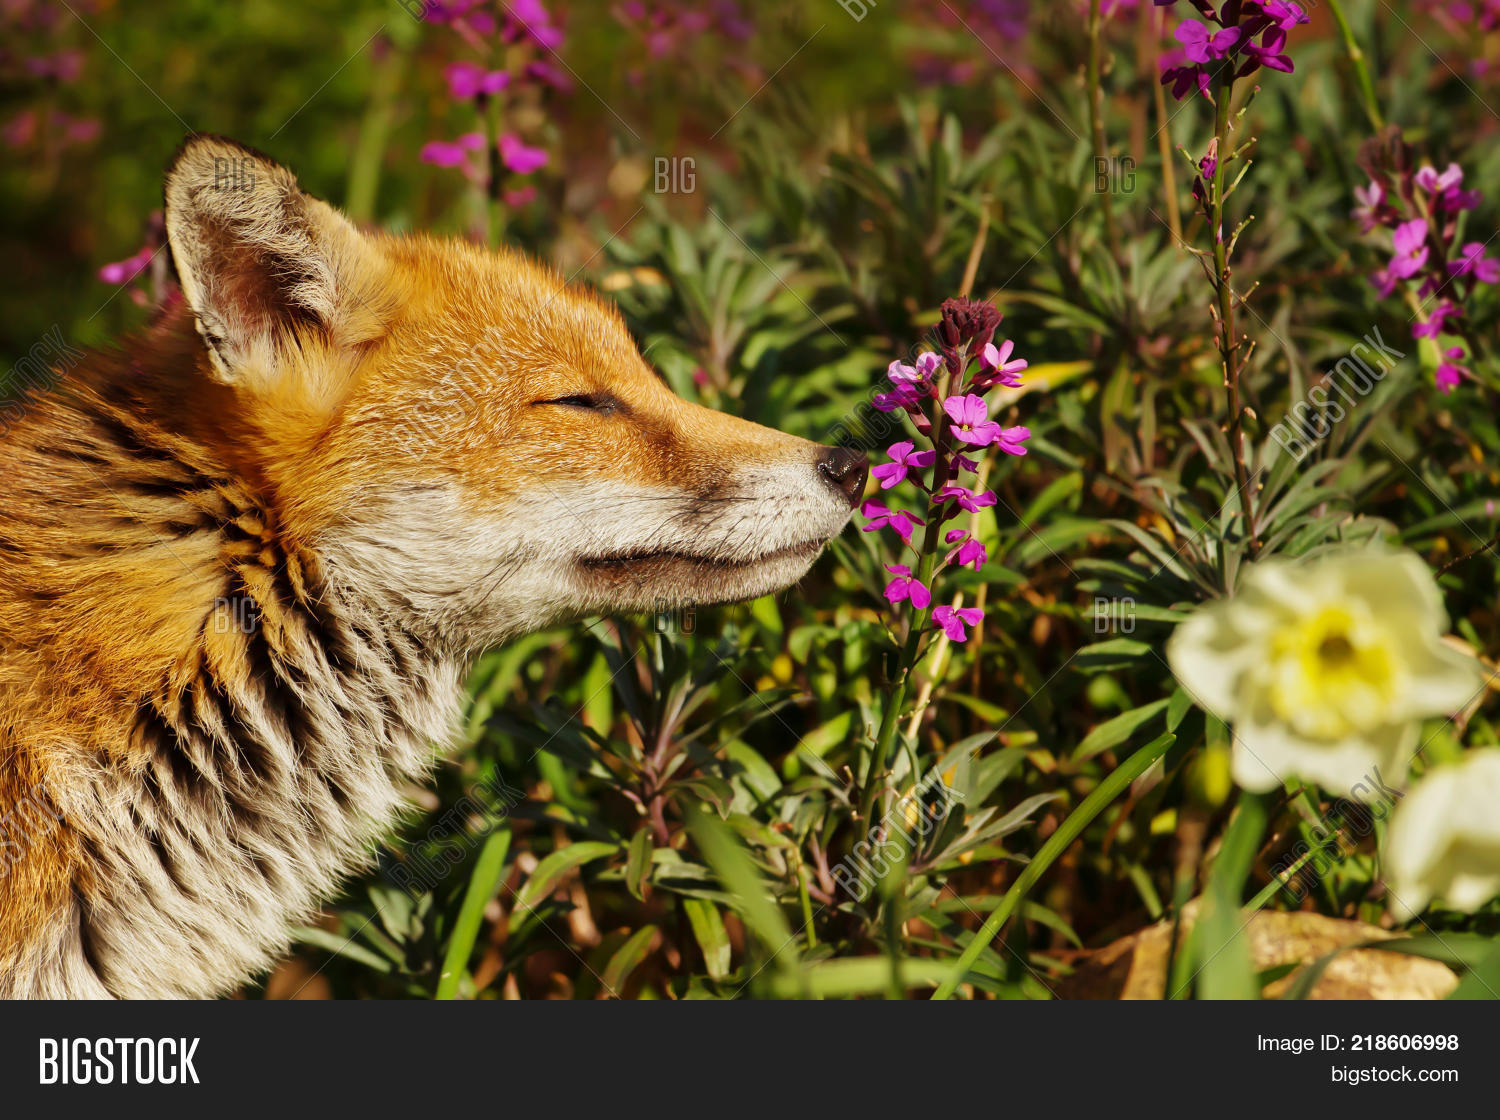 Red Fox Smelling Image Photo Free Trial Bigstock